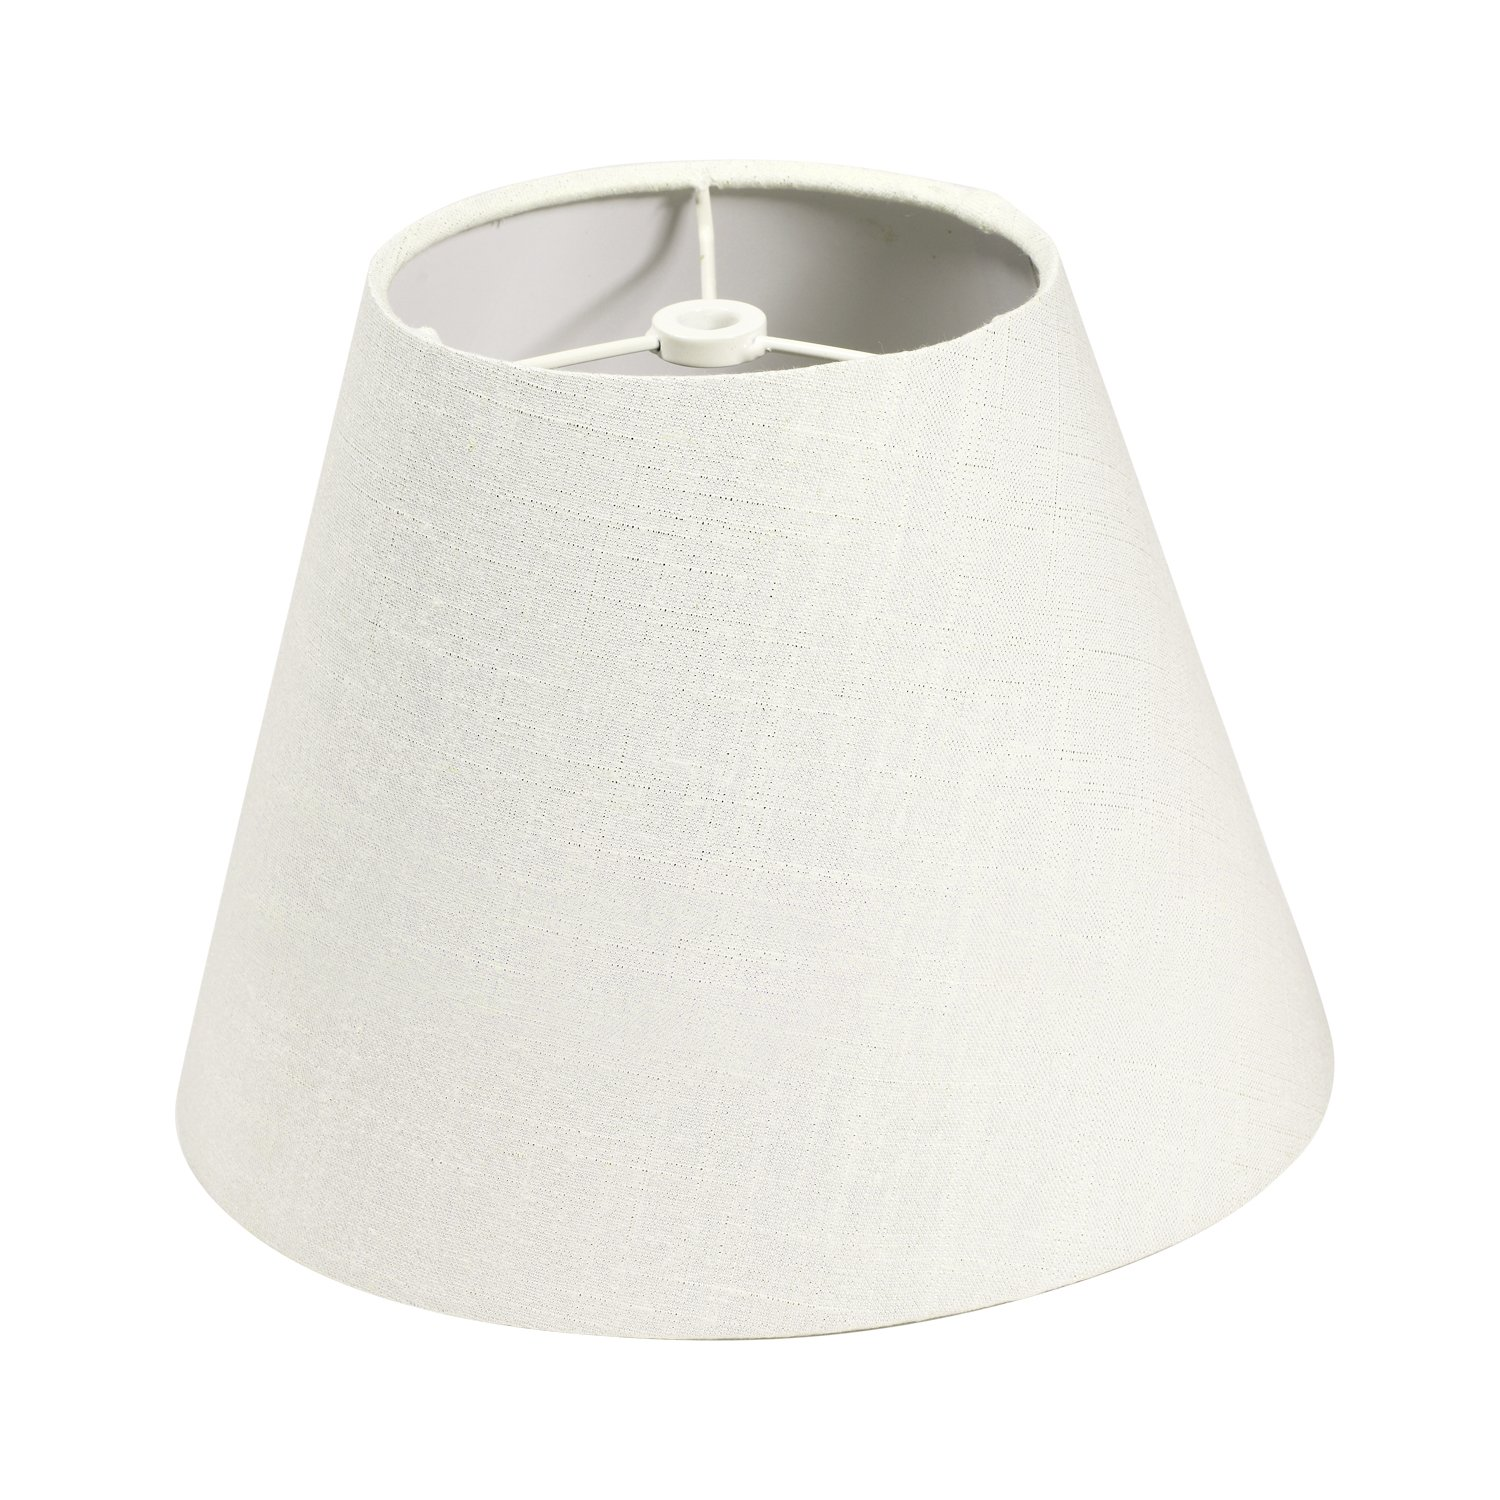 Lamp shades amazon lighting ceiling fans lighting lampshades welcome to the lampshades store aloadofball Image collections